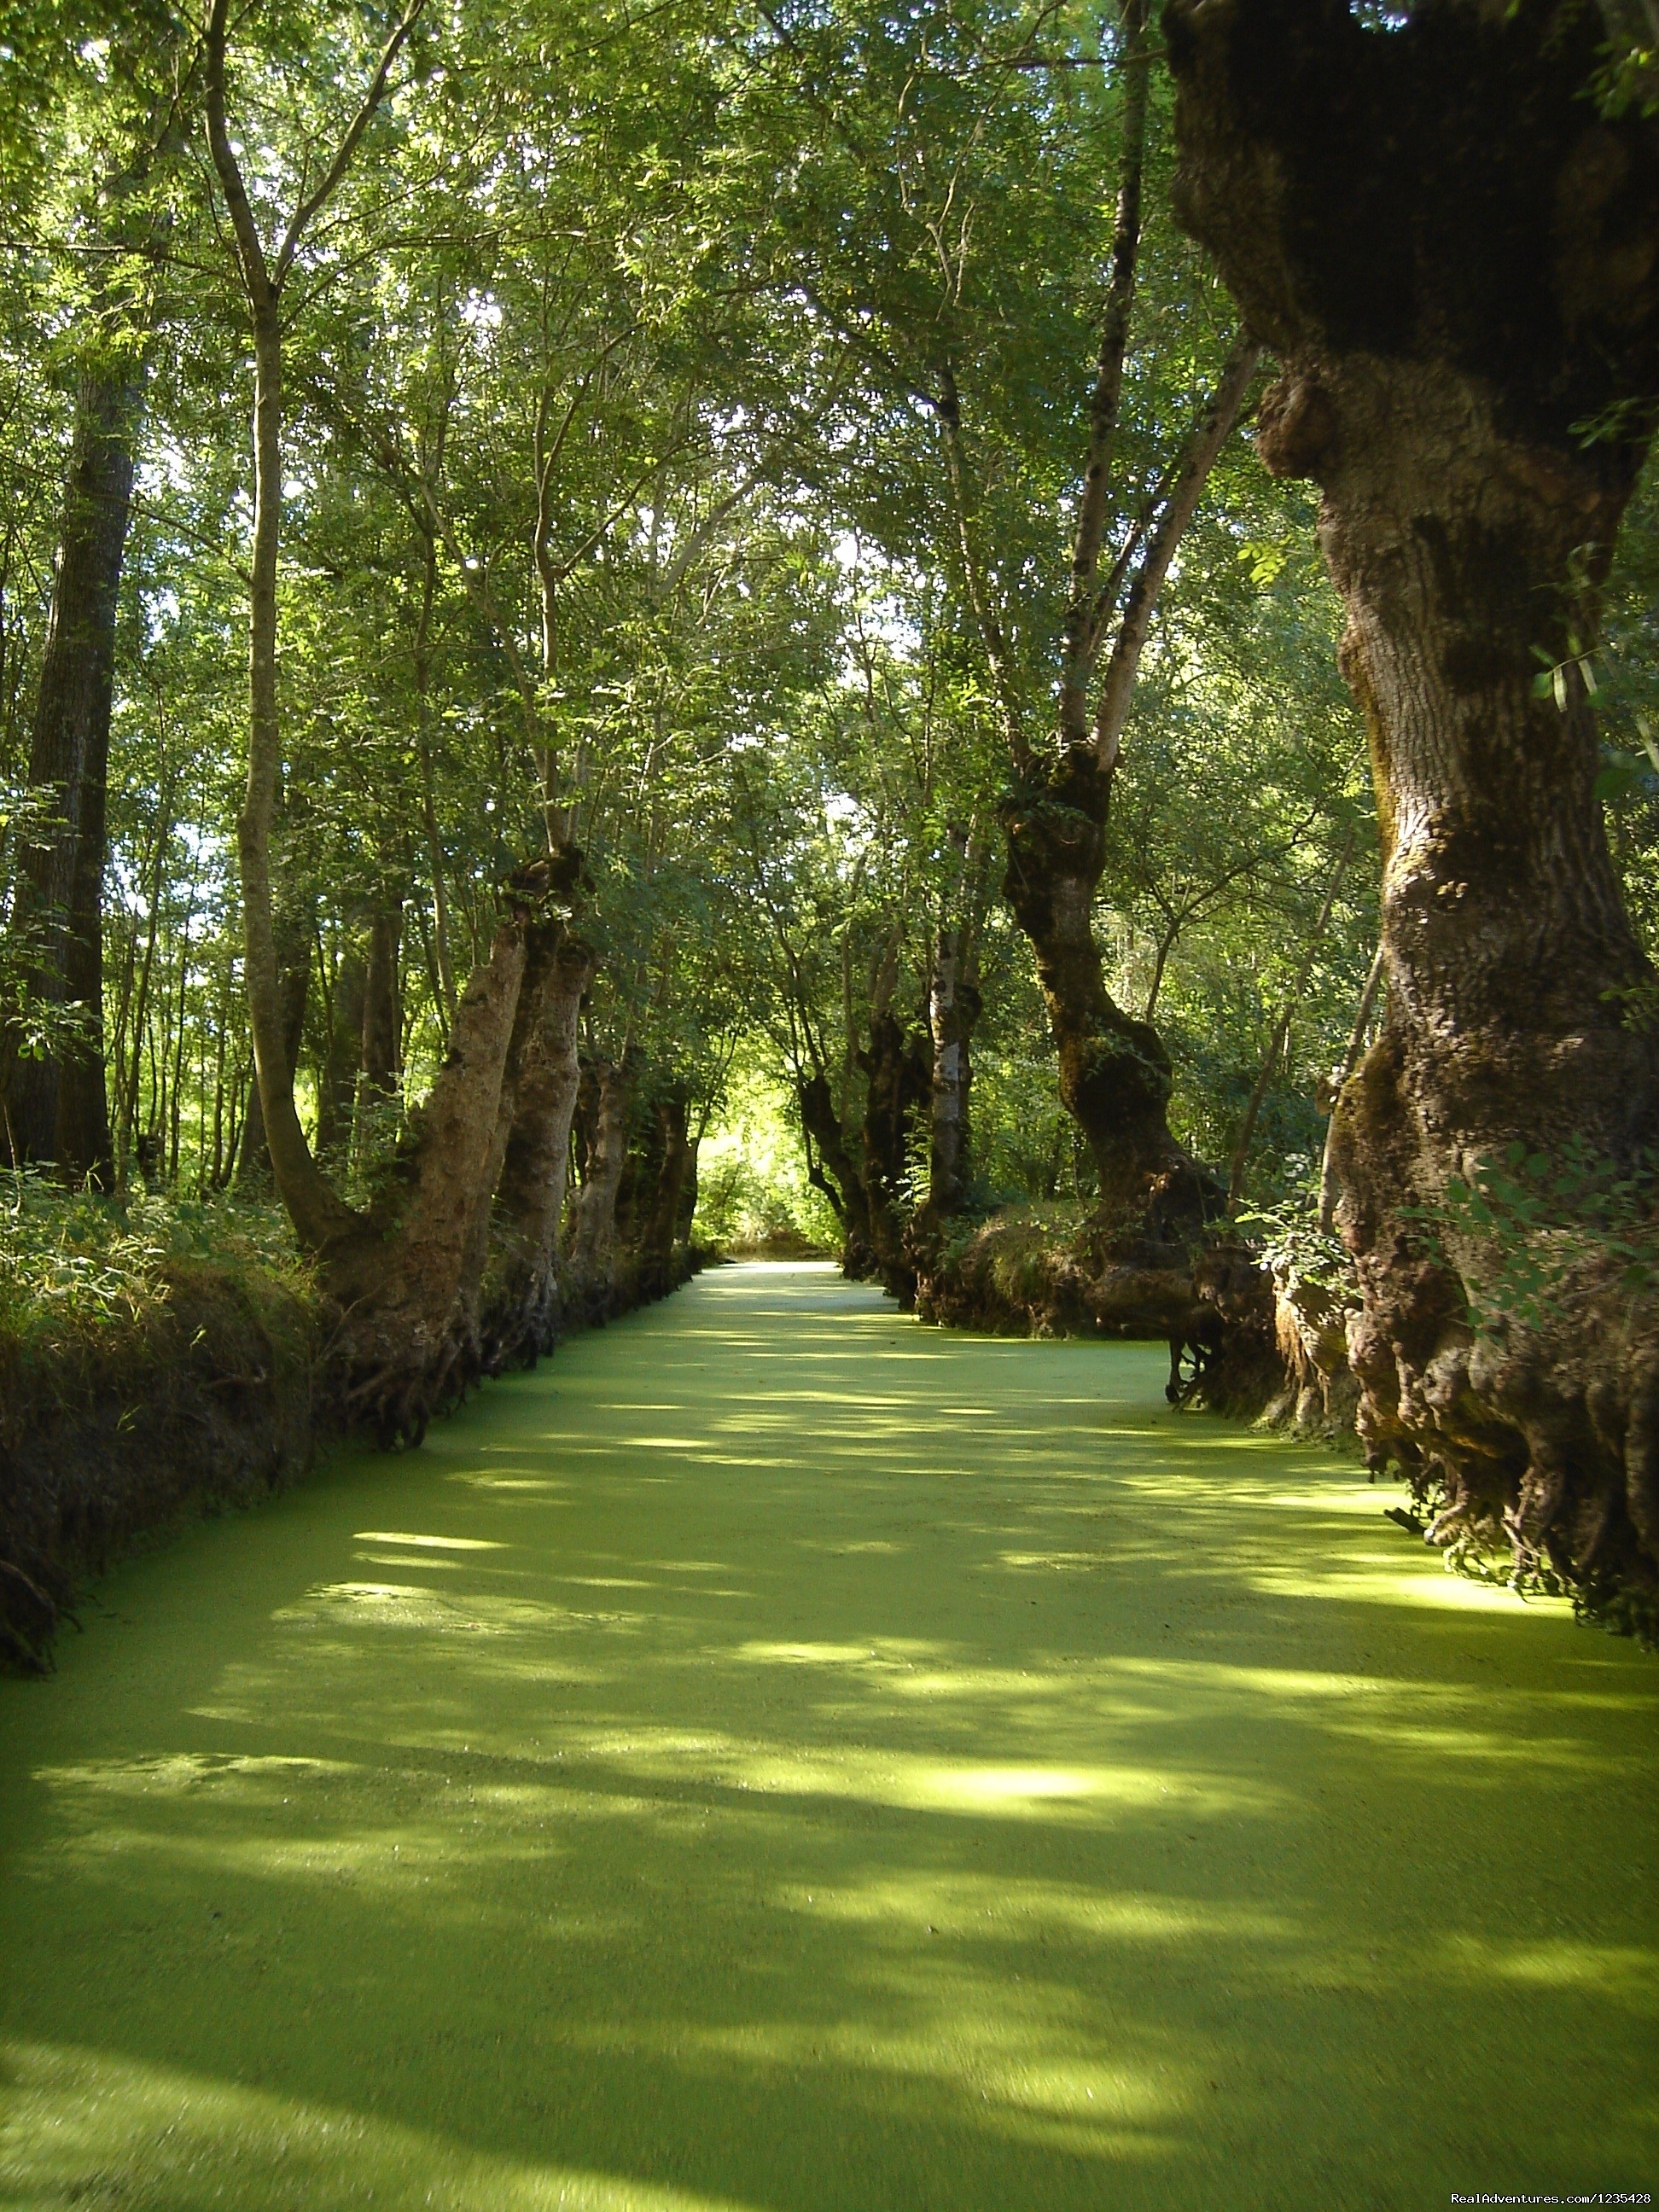 The Green Venice